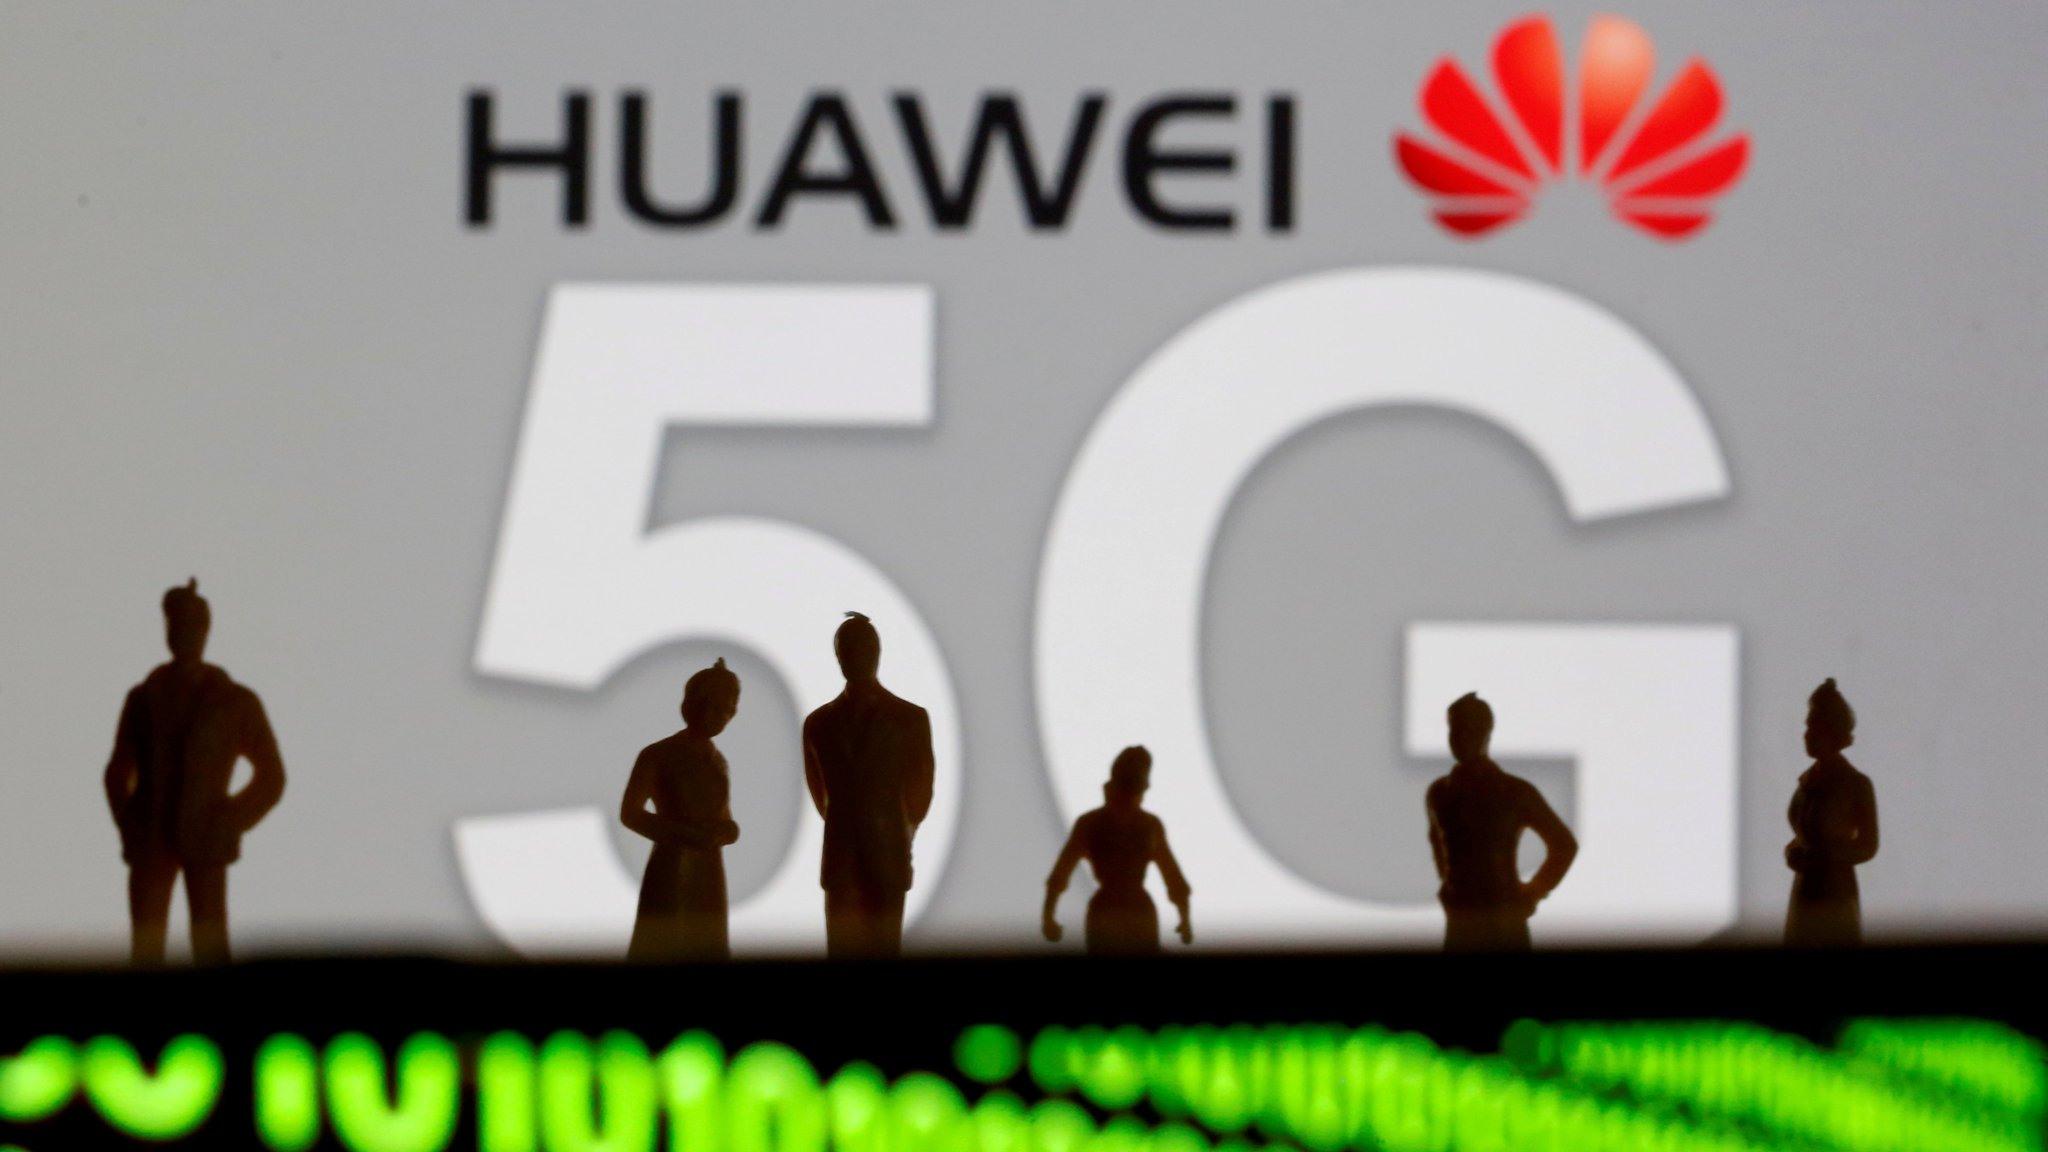 Huawei reveals it has no 5G contracts from mainland China